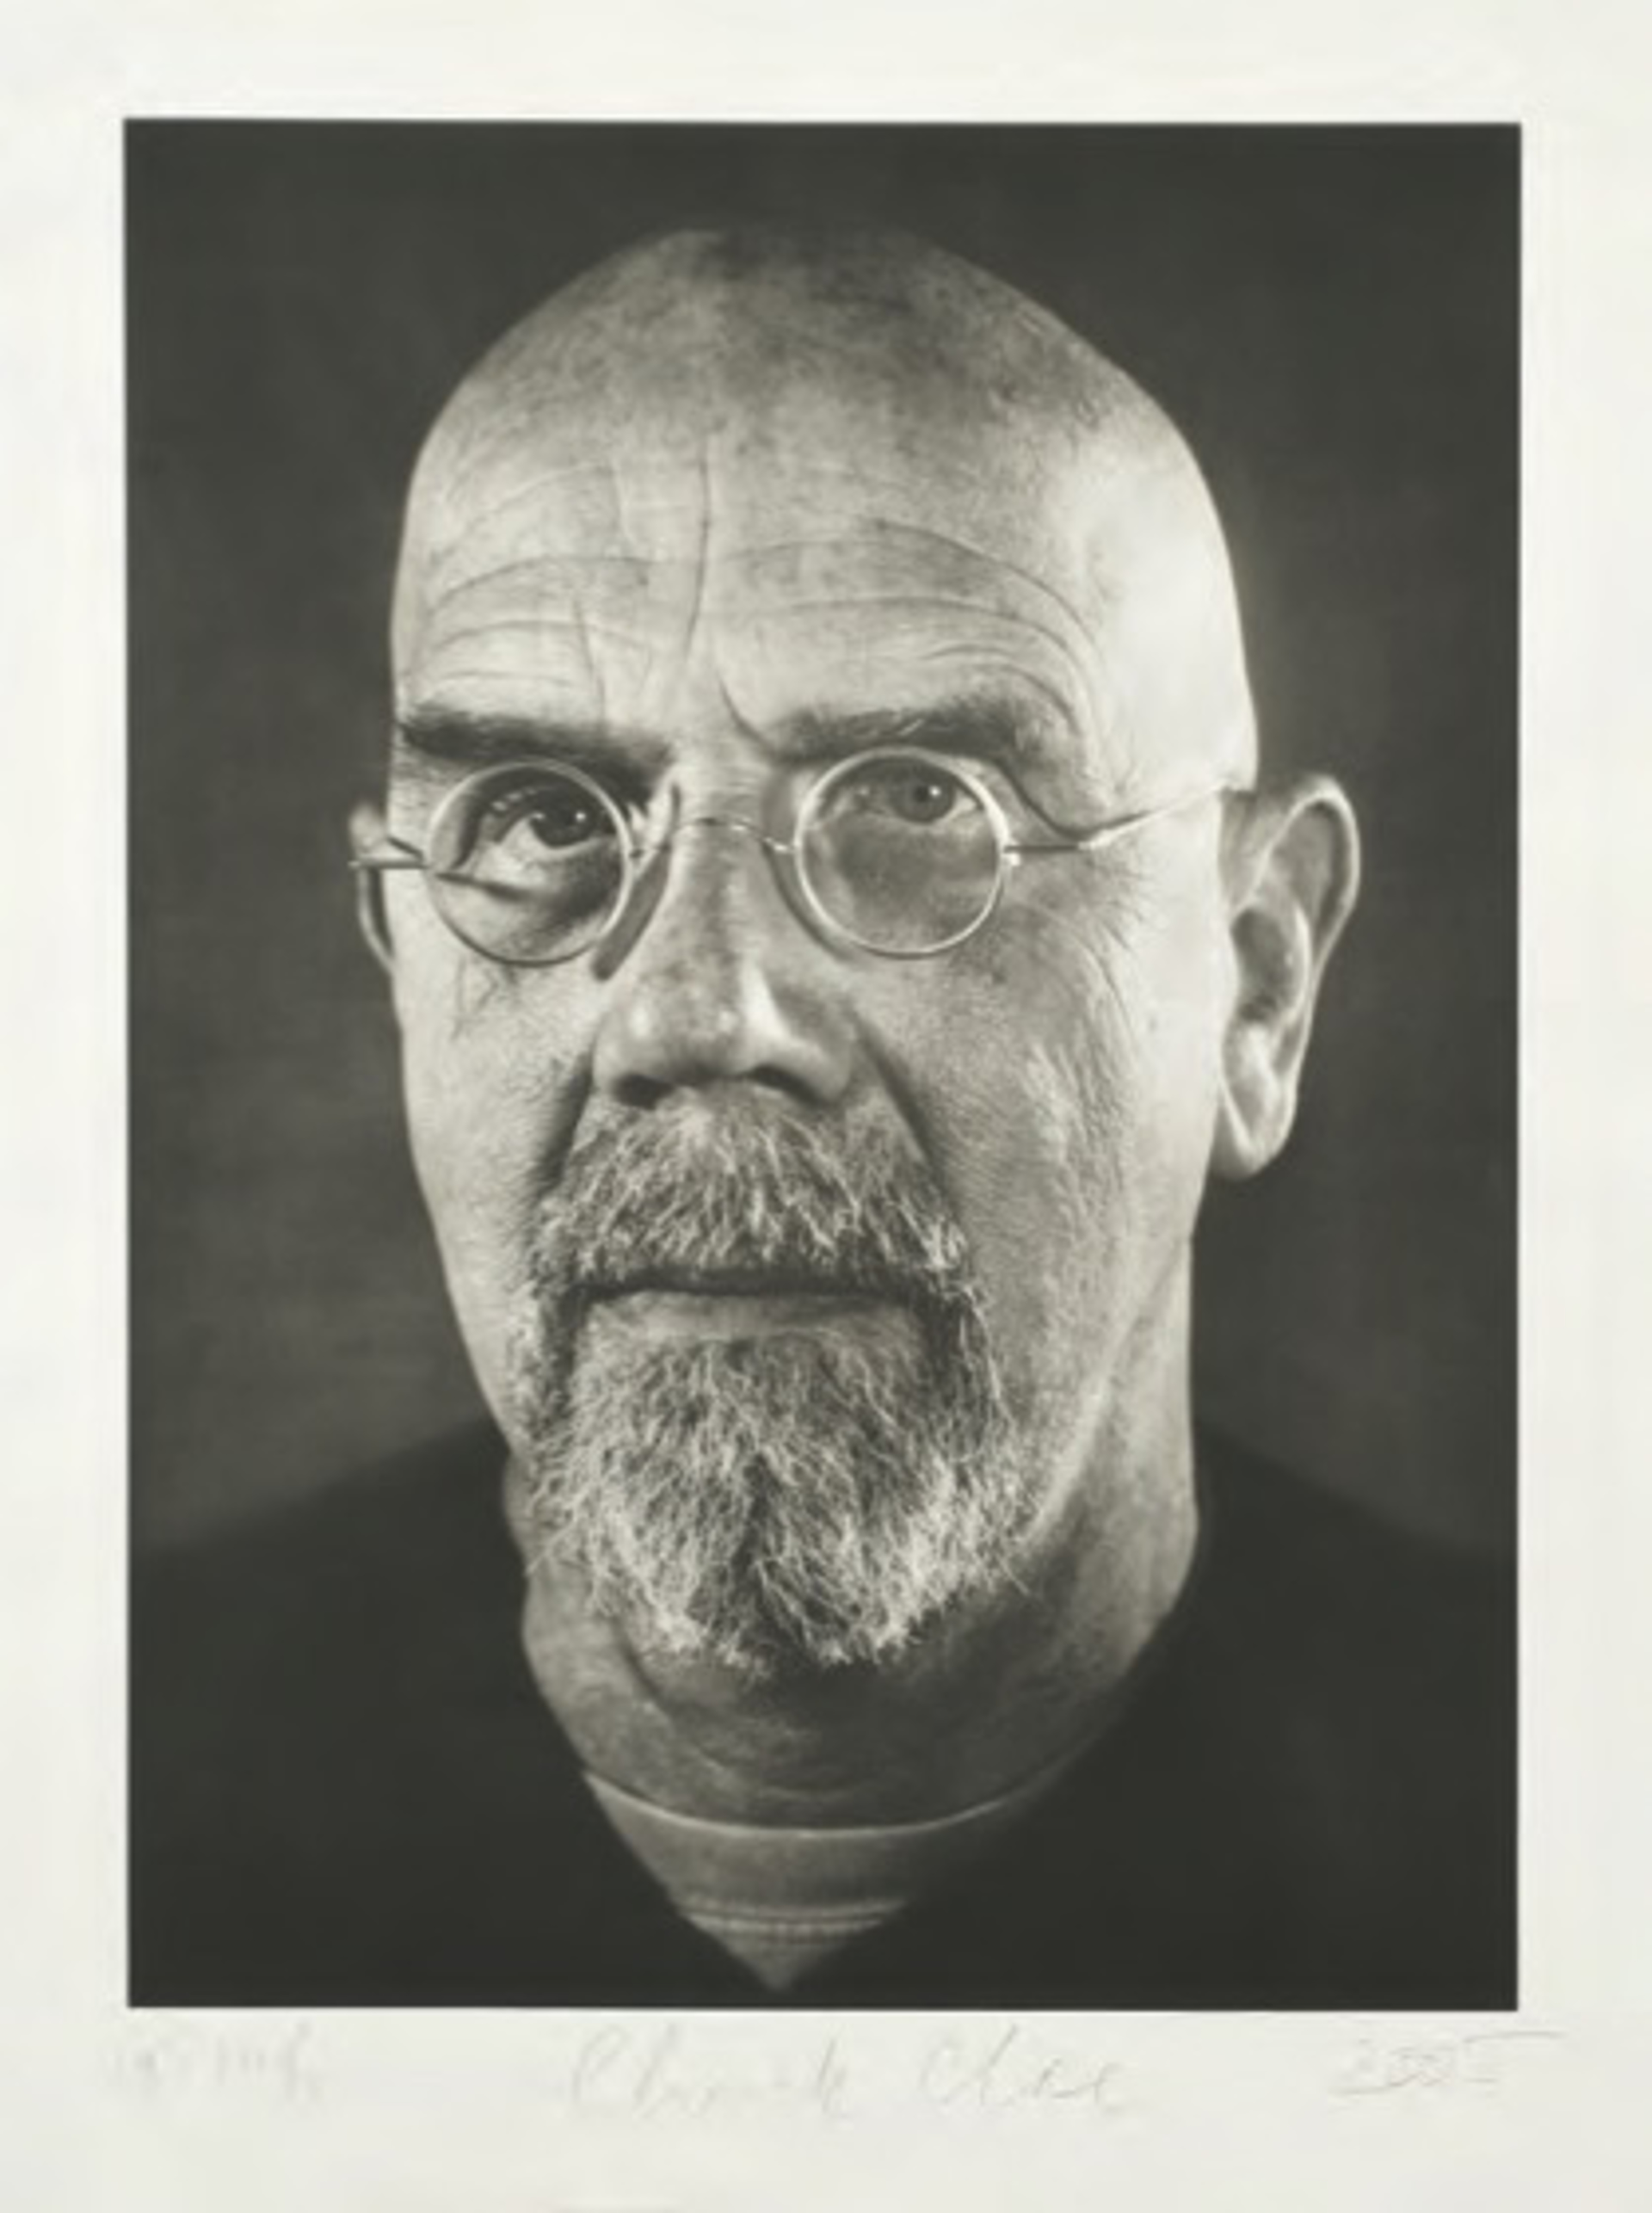 Self-Portrait/ Photogravure by Chuck Close